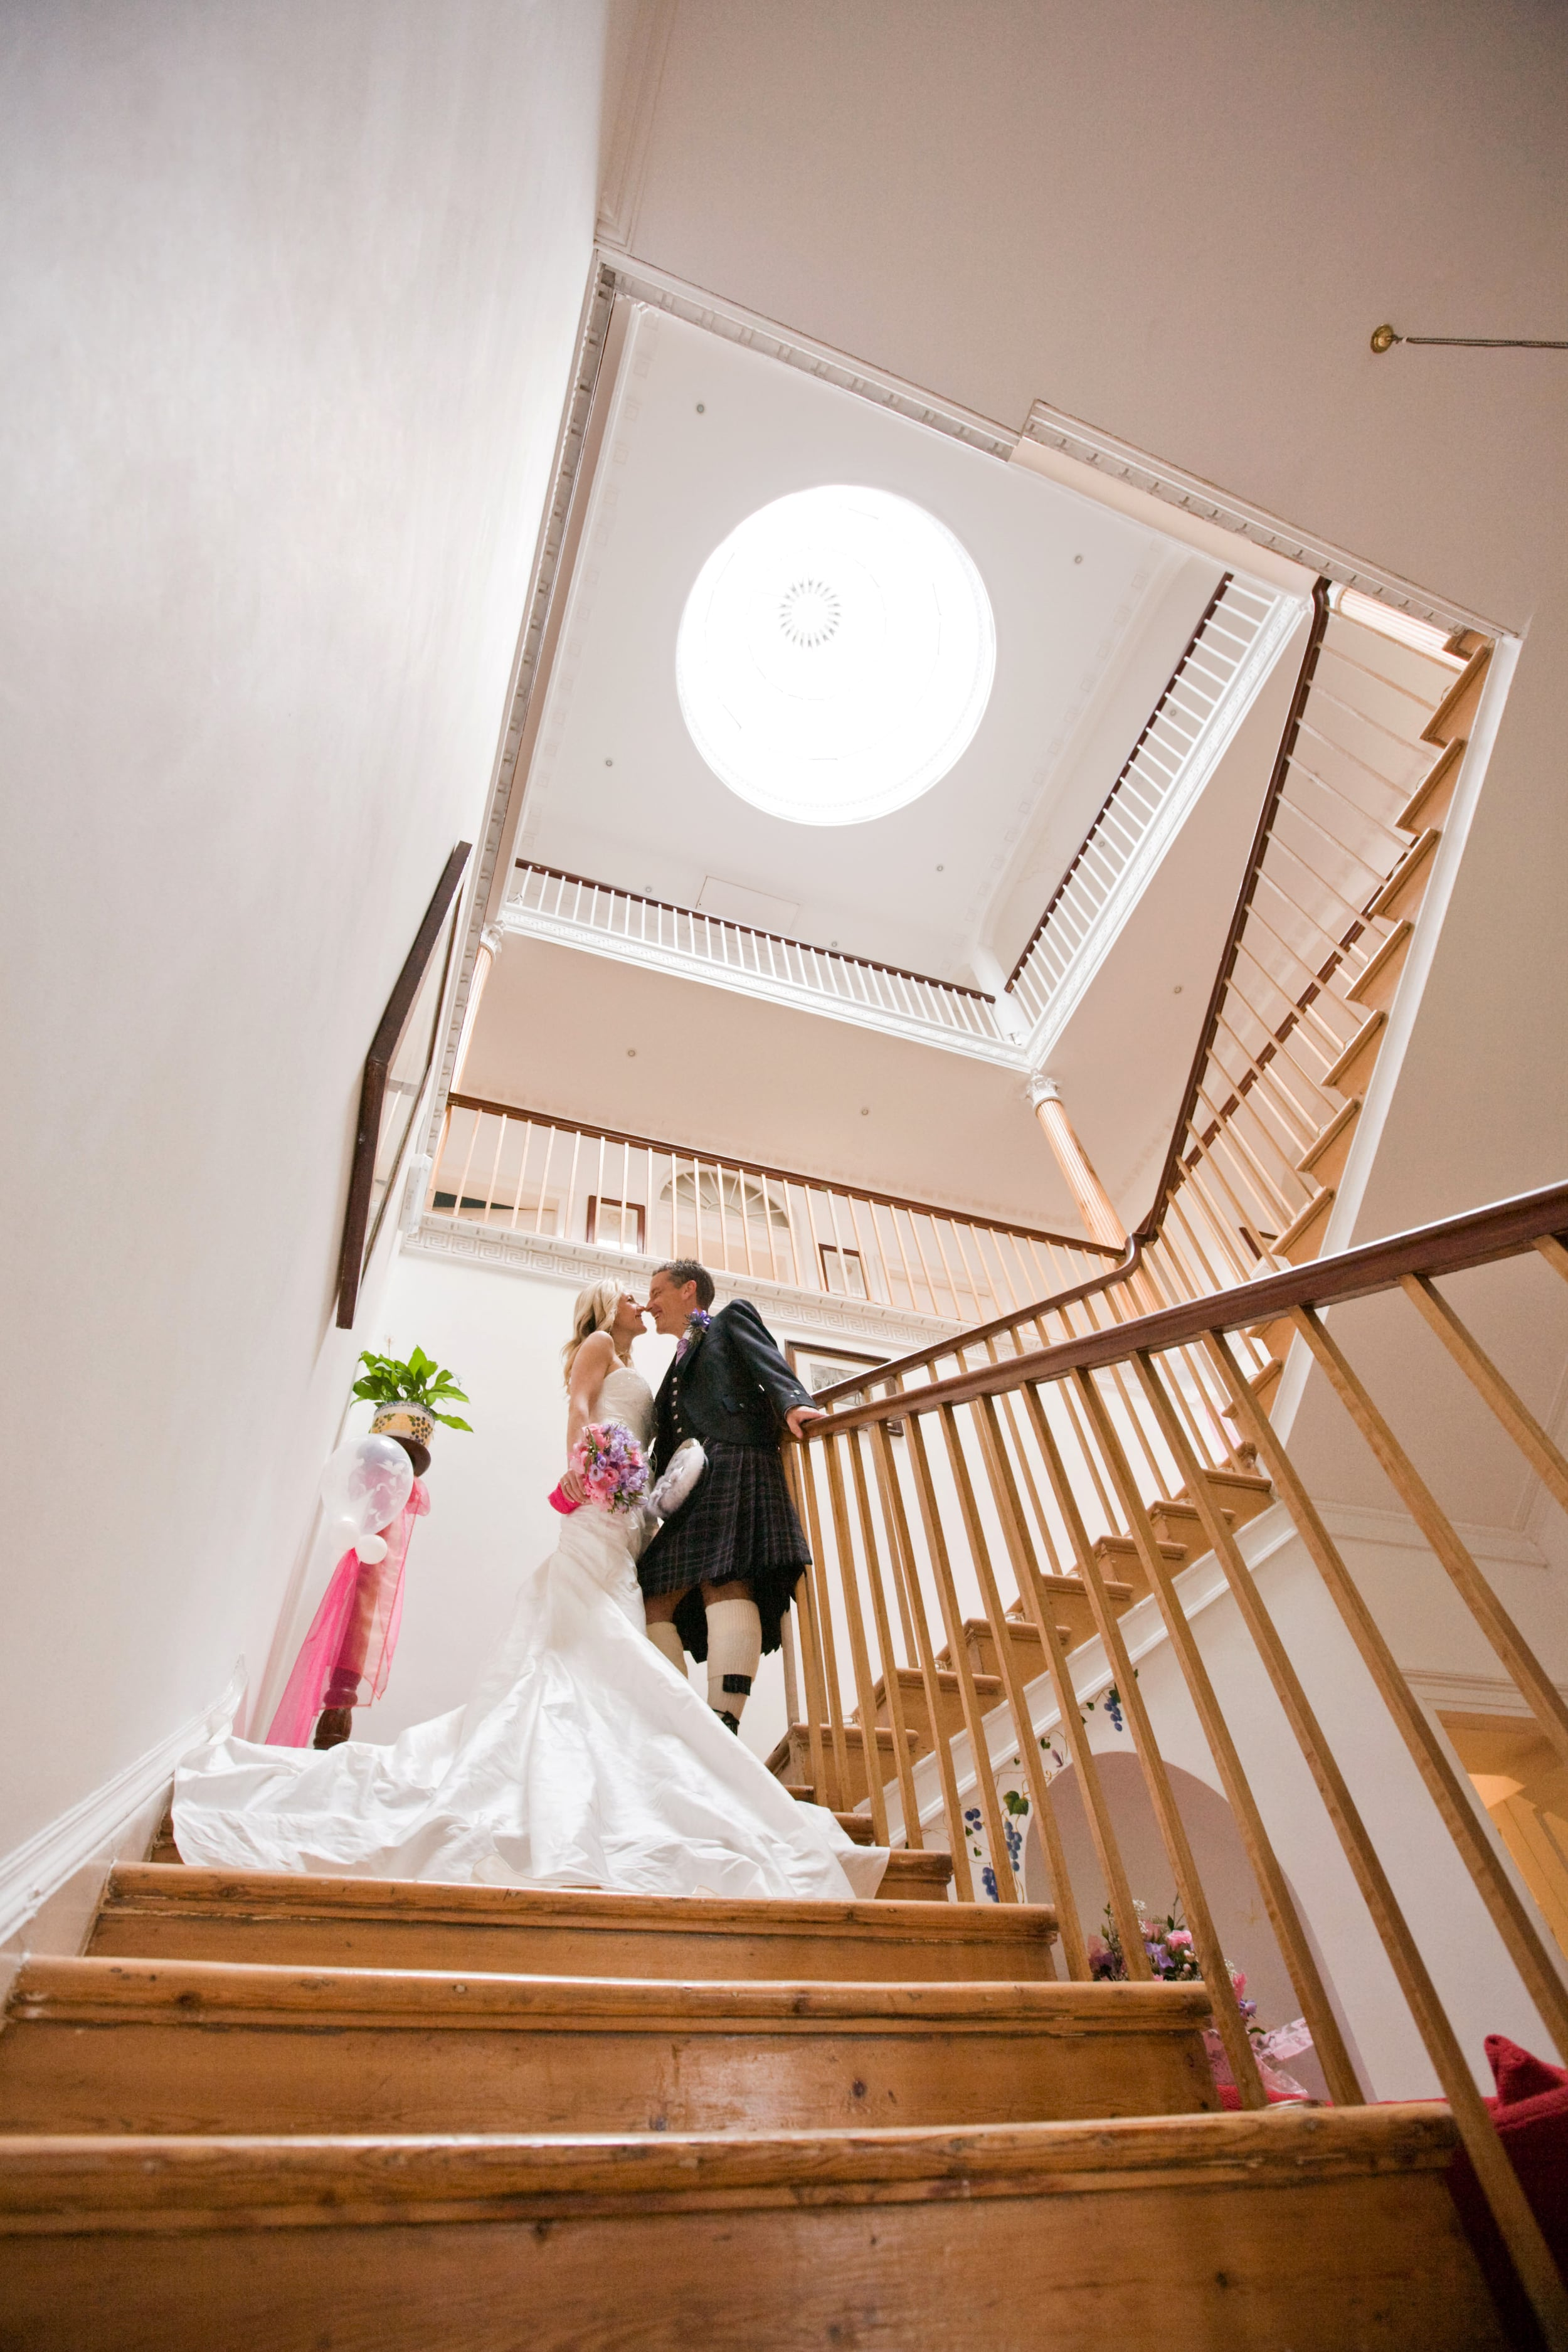 03 Bride and groom on stairs (Marion).jpg